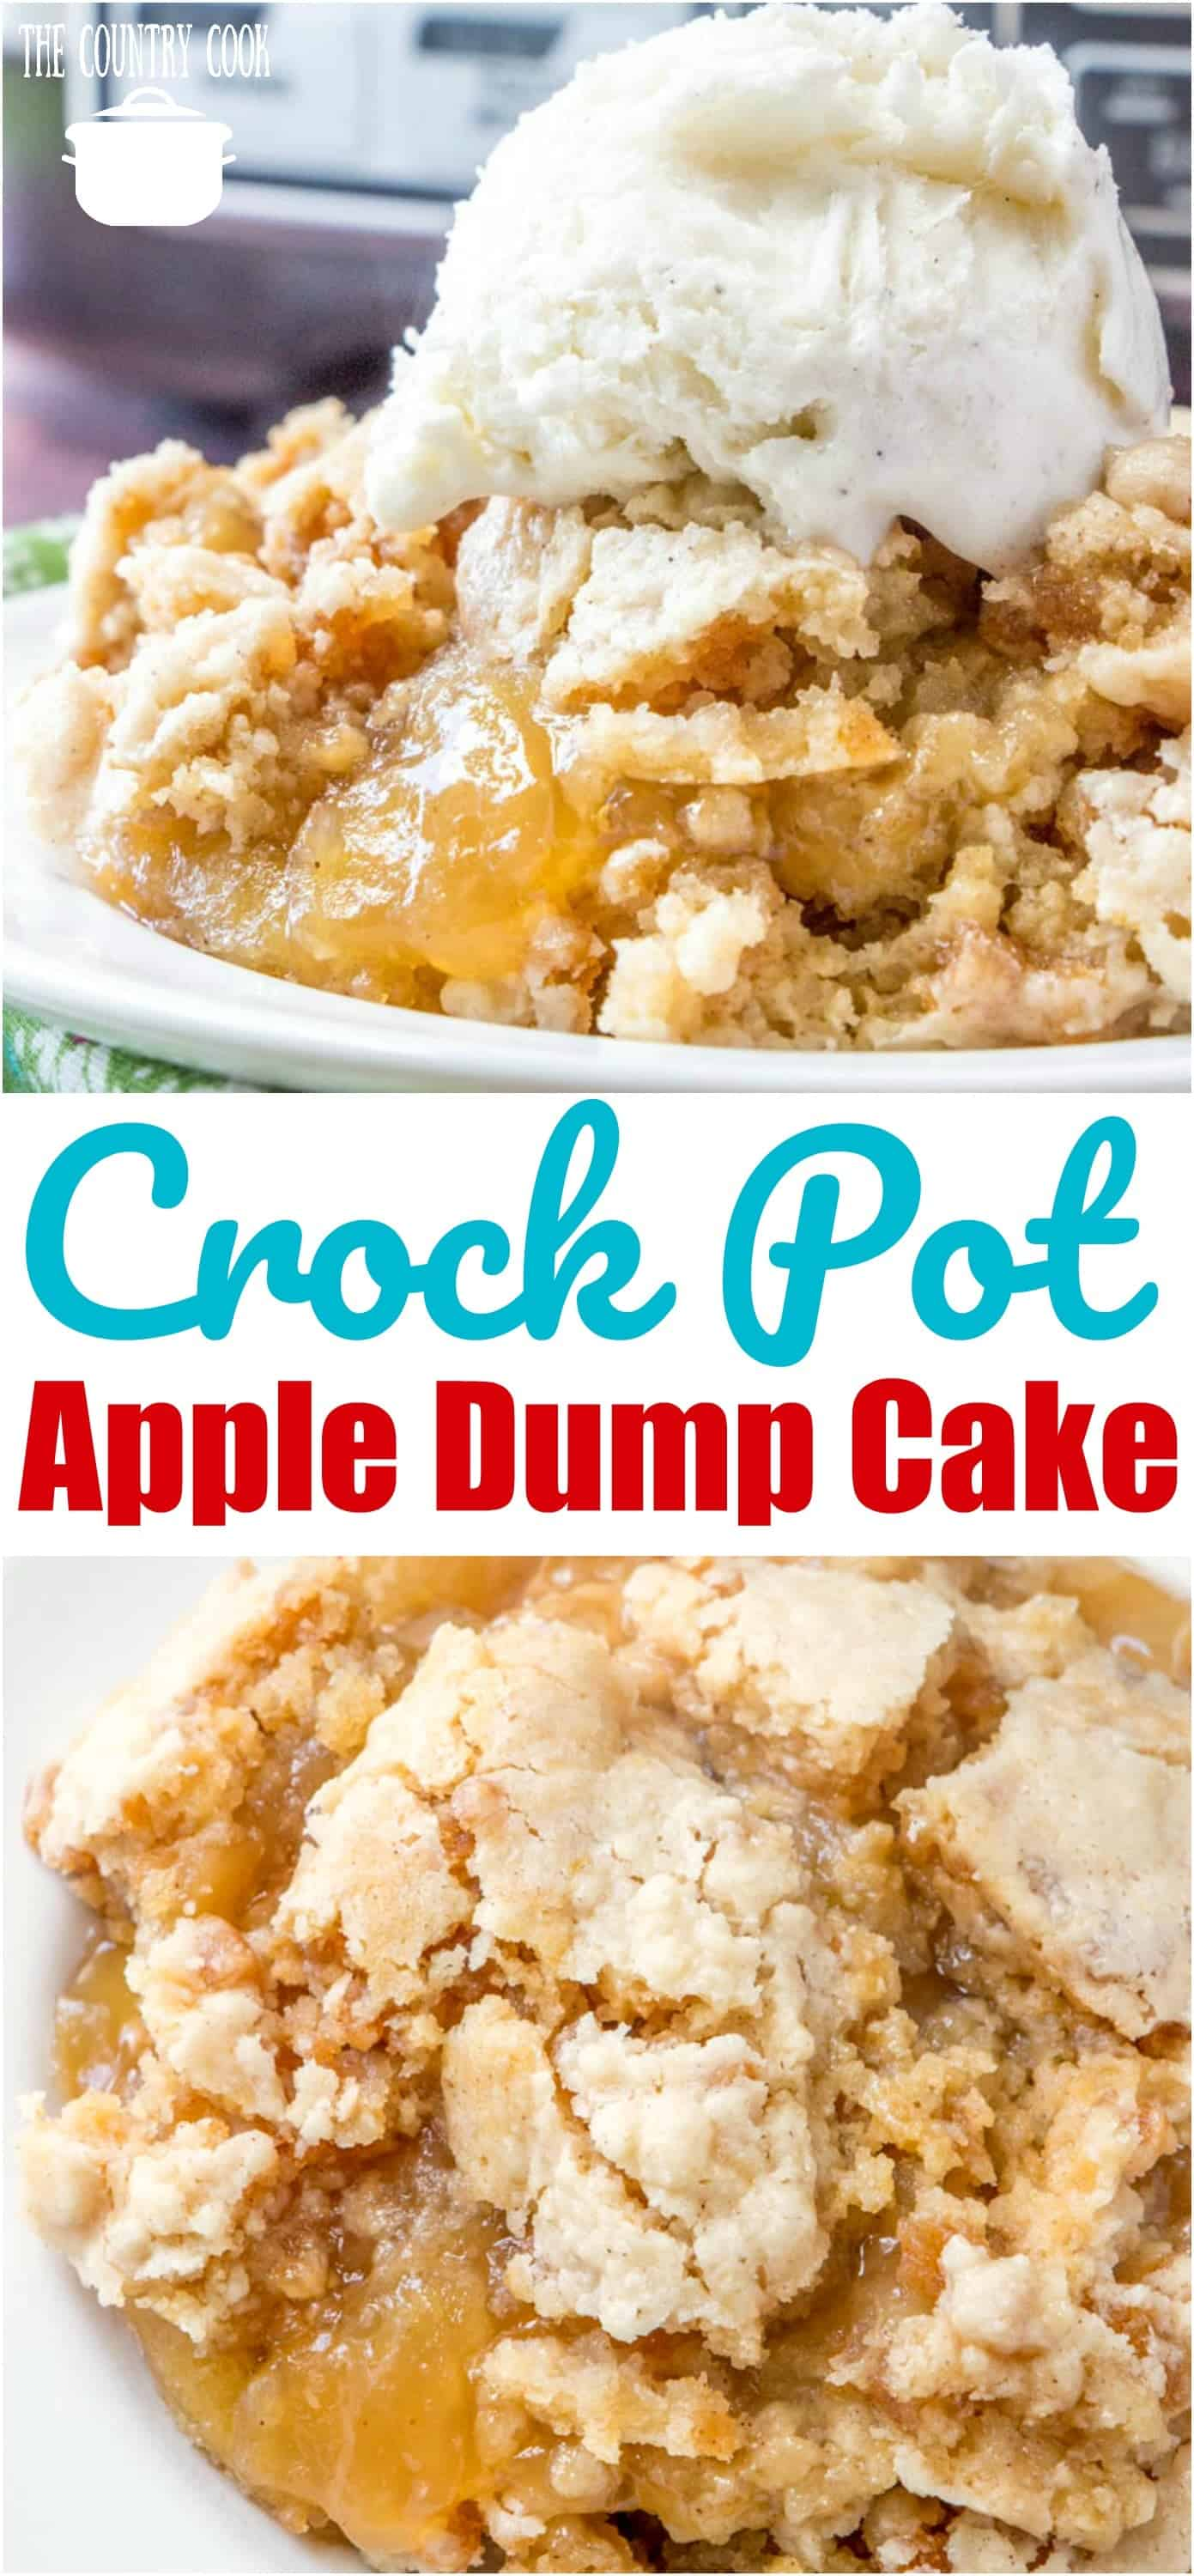 Easy Crock Pot Apple Dump Cake recipe from The Country Cook #desserts #recipes #ideas #muffinmix #crockpot #slowcooker #applepiefilling #apple